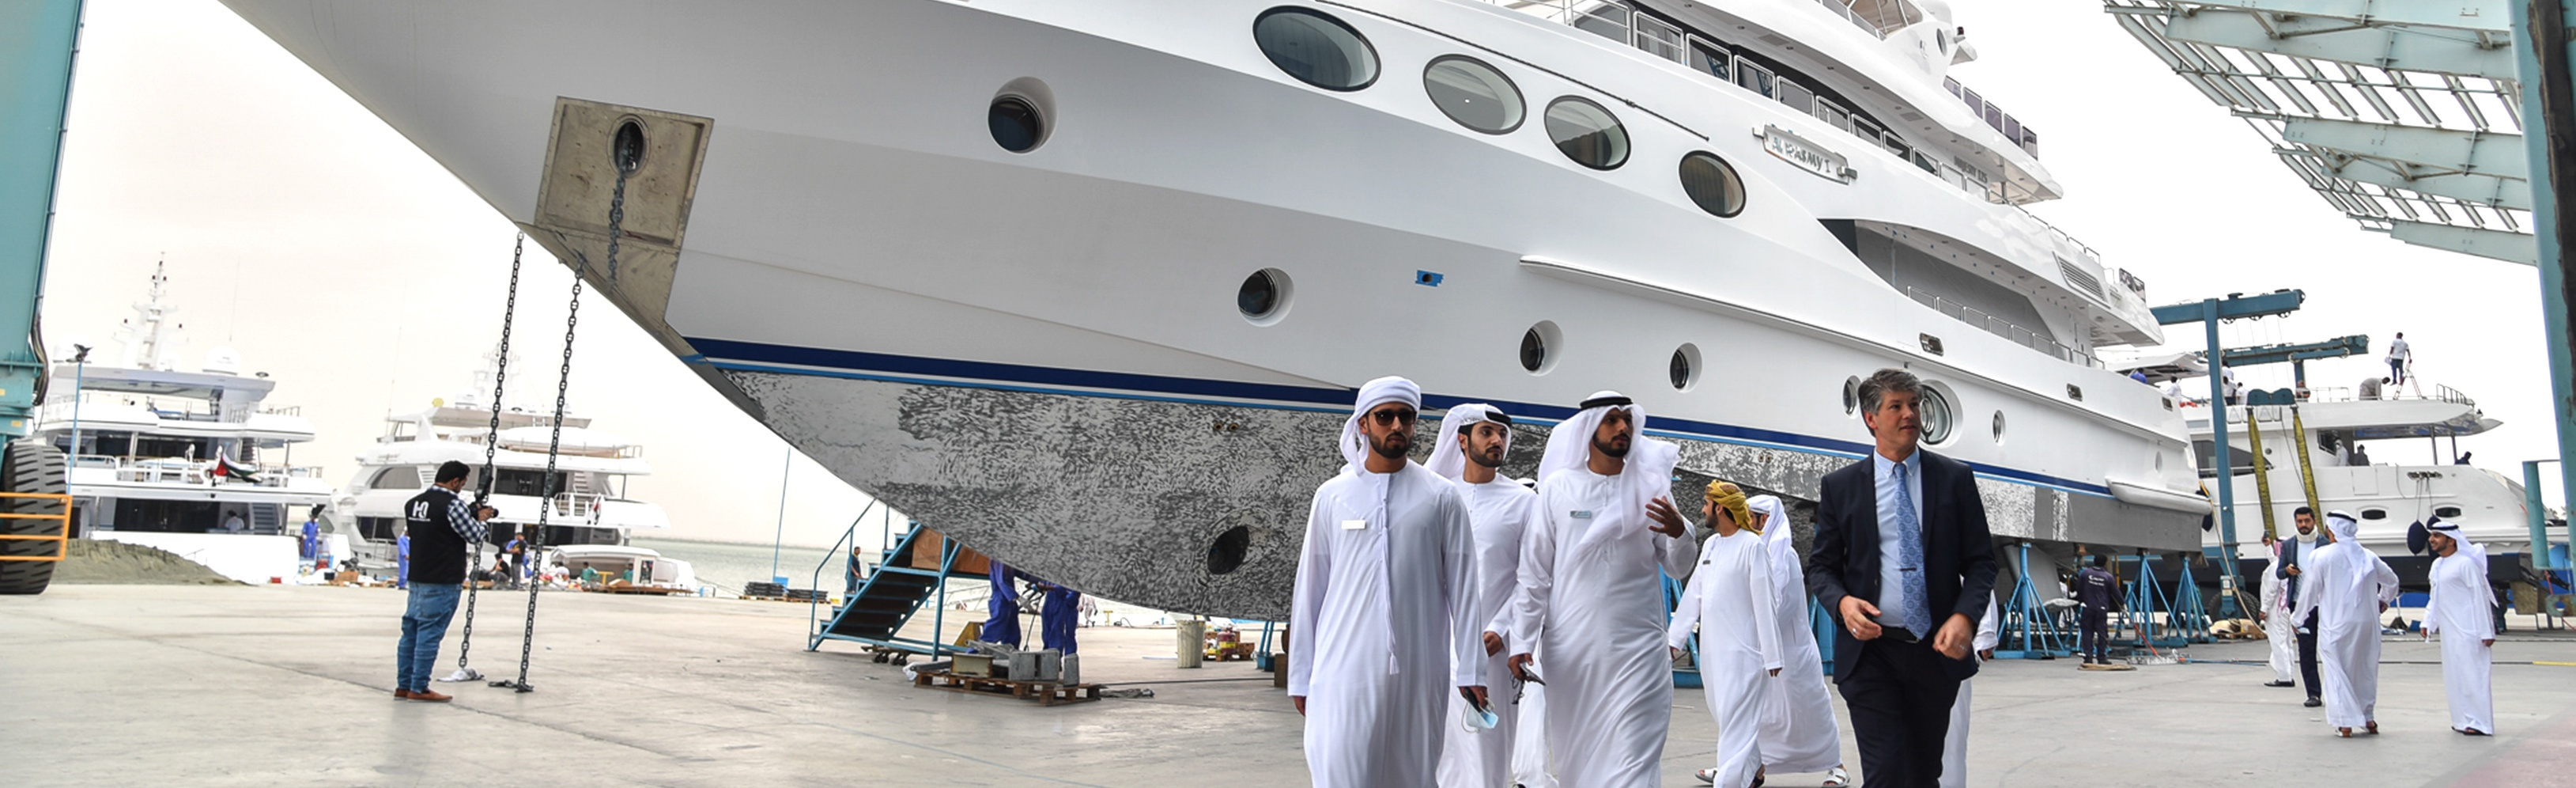 Gulf-Craft---Abdulaziz-Leadership-Program-2017.jpg